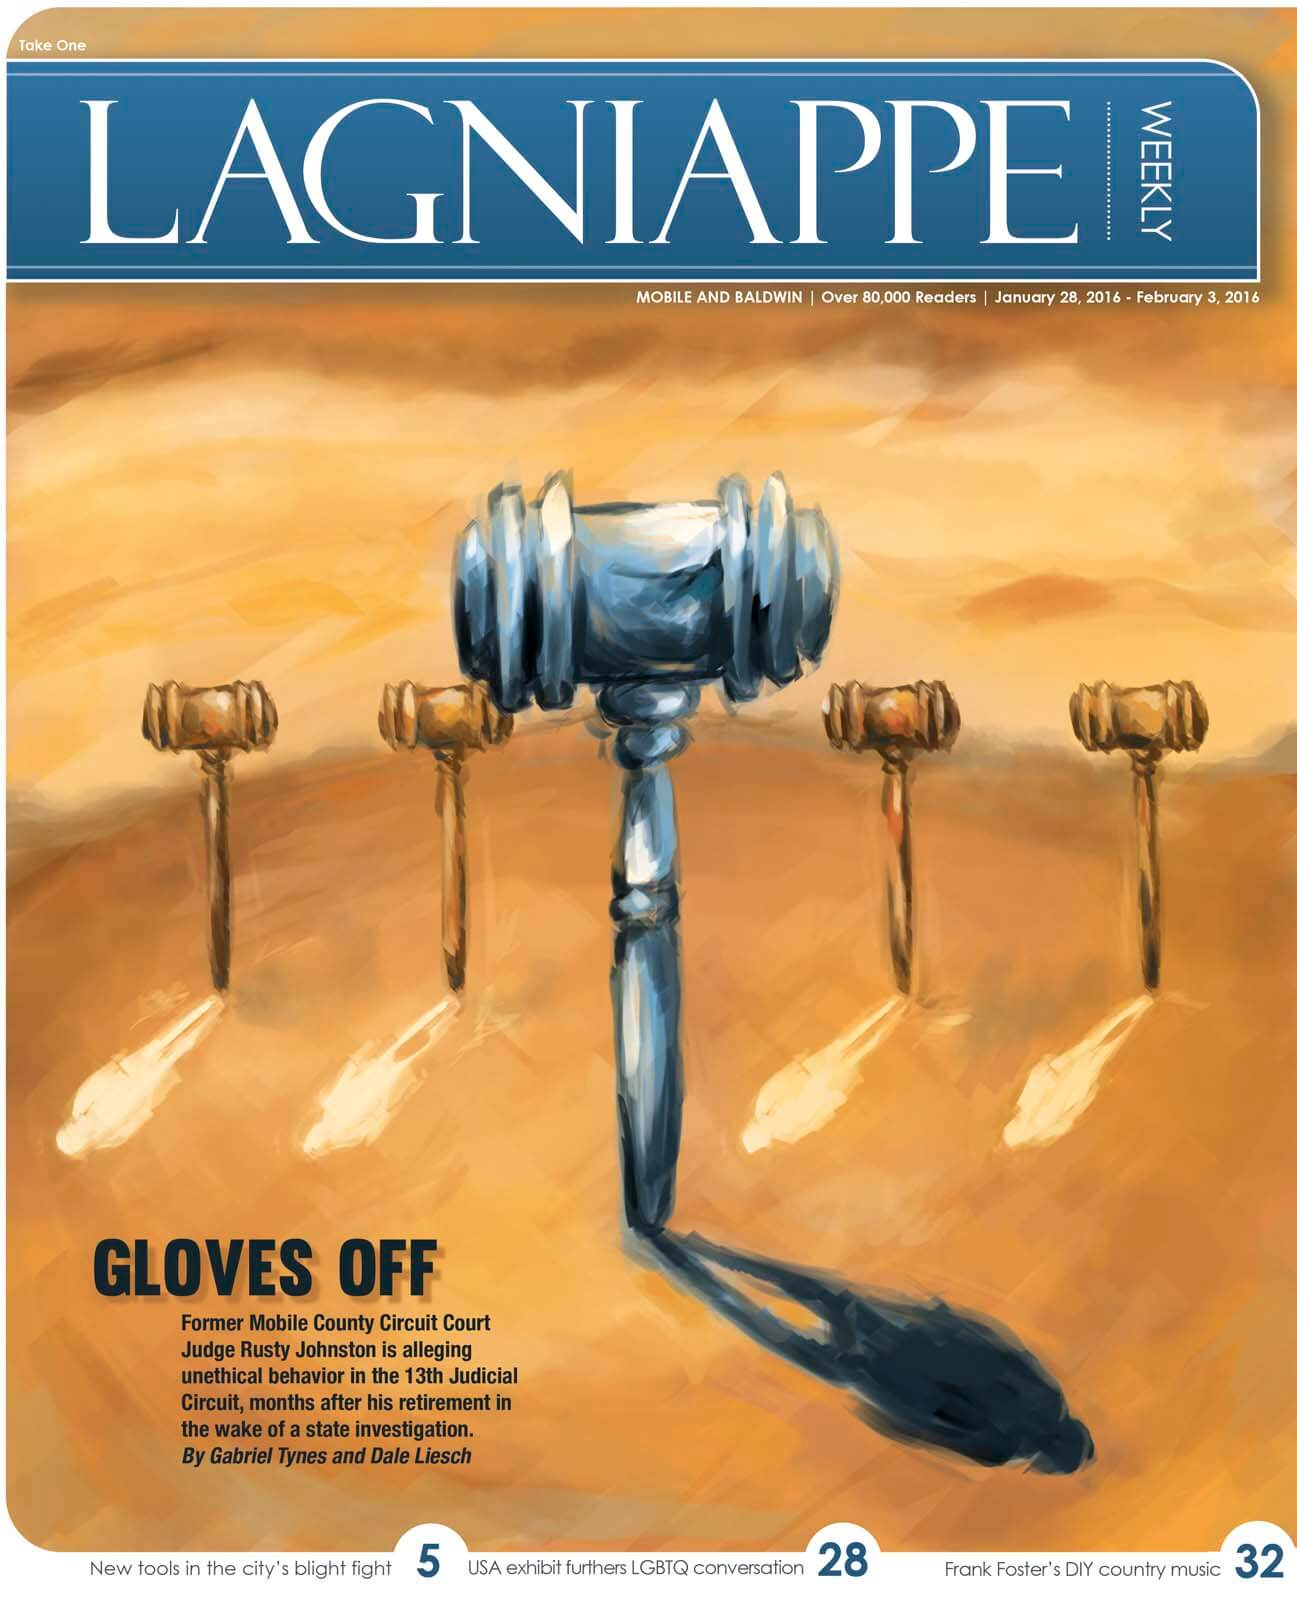 COVER STORY: Retired judge accusing former colleagues of misconduct